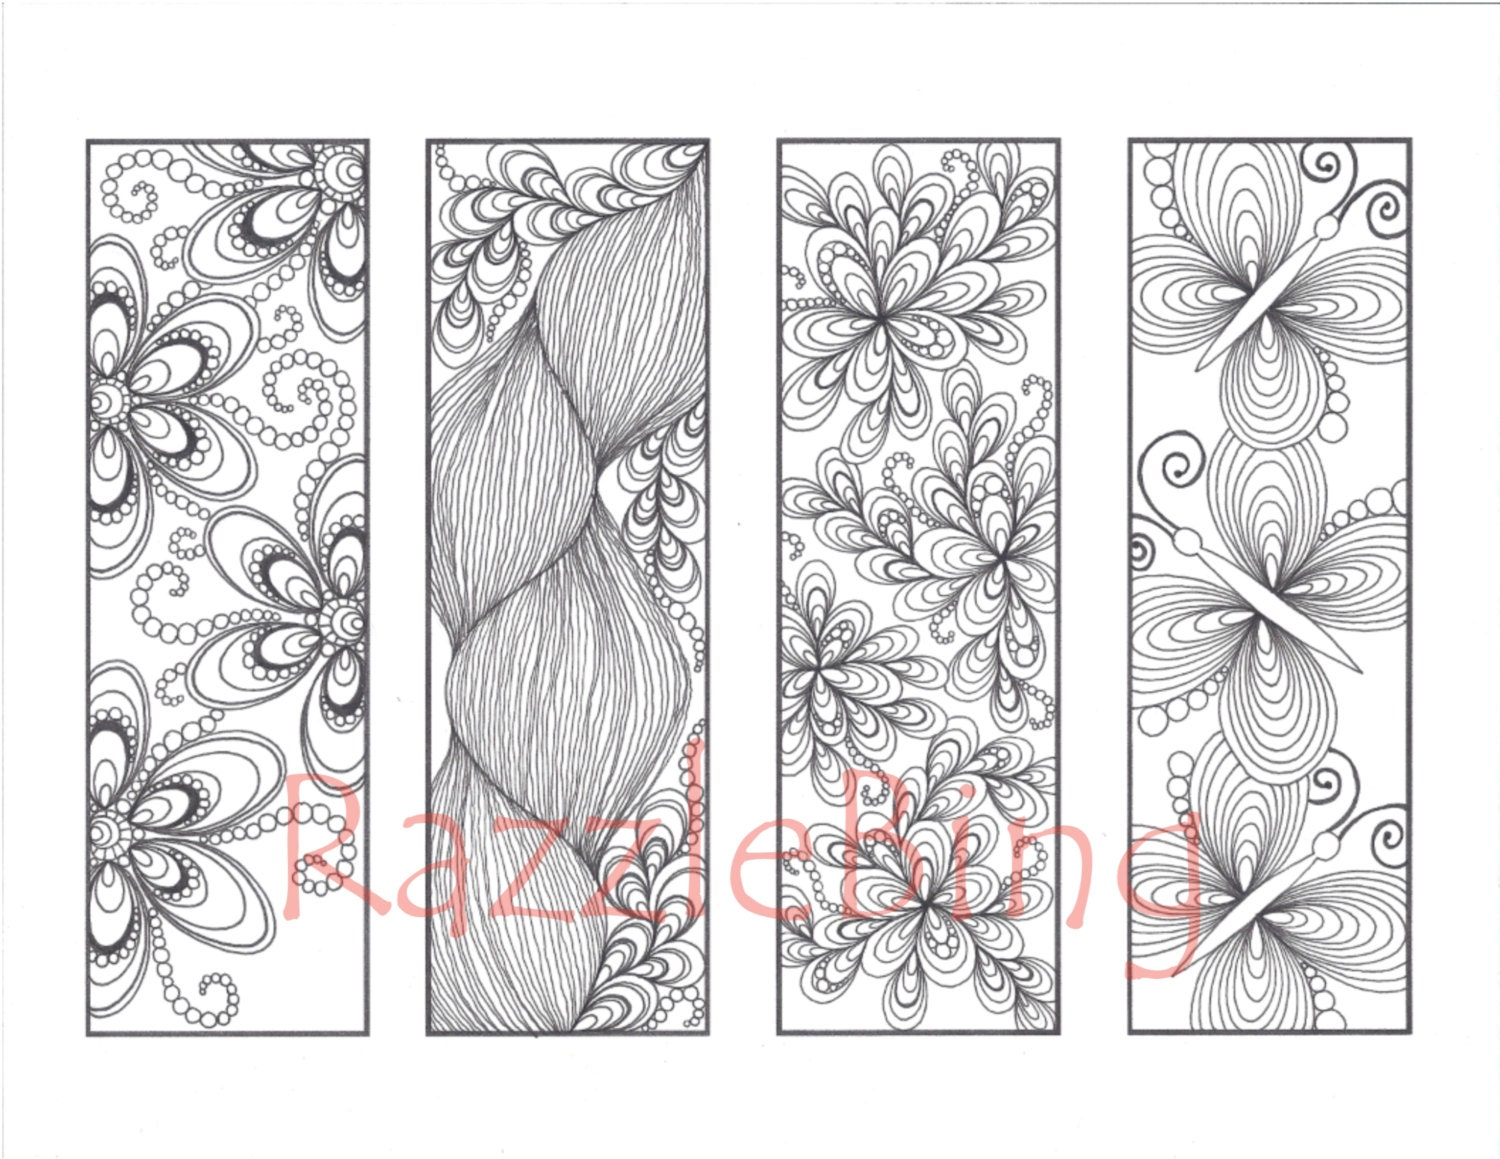 valentine bookmarks to color : Diy Bookmark Printable Coloring Page Zentangle Henna Inspired Butterflies And Blooms Zendoodle Doodle Pdf Instant Download